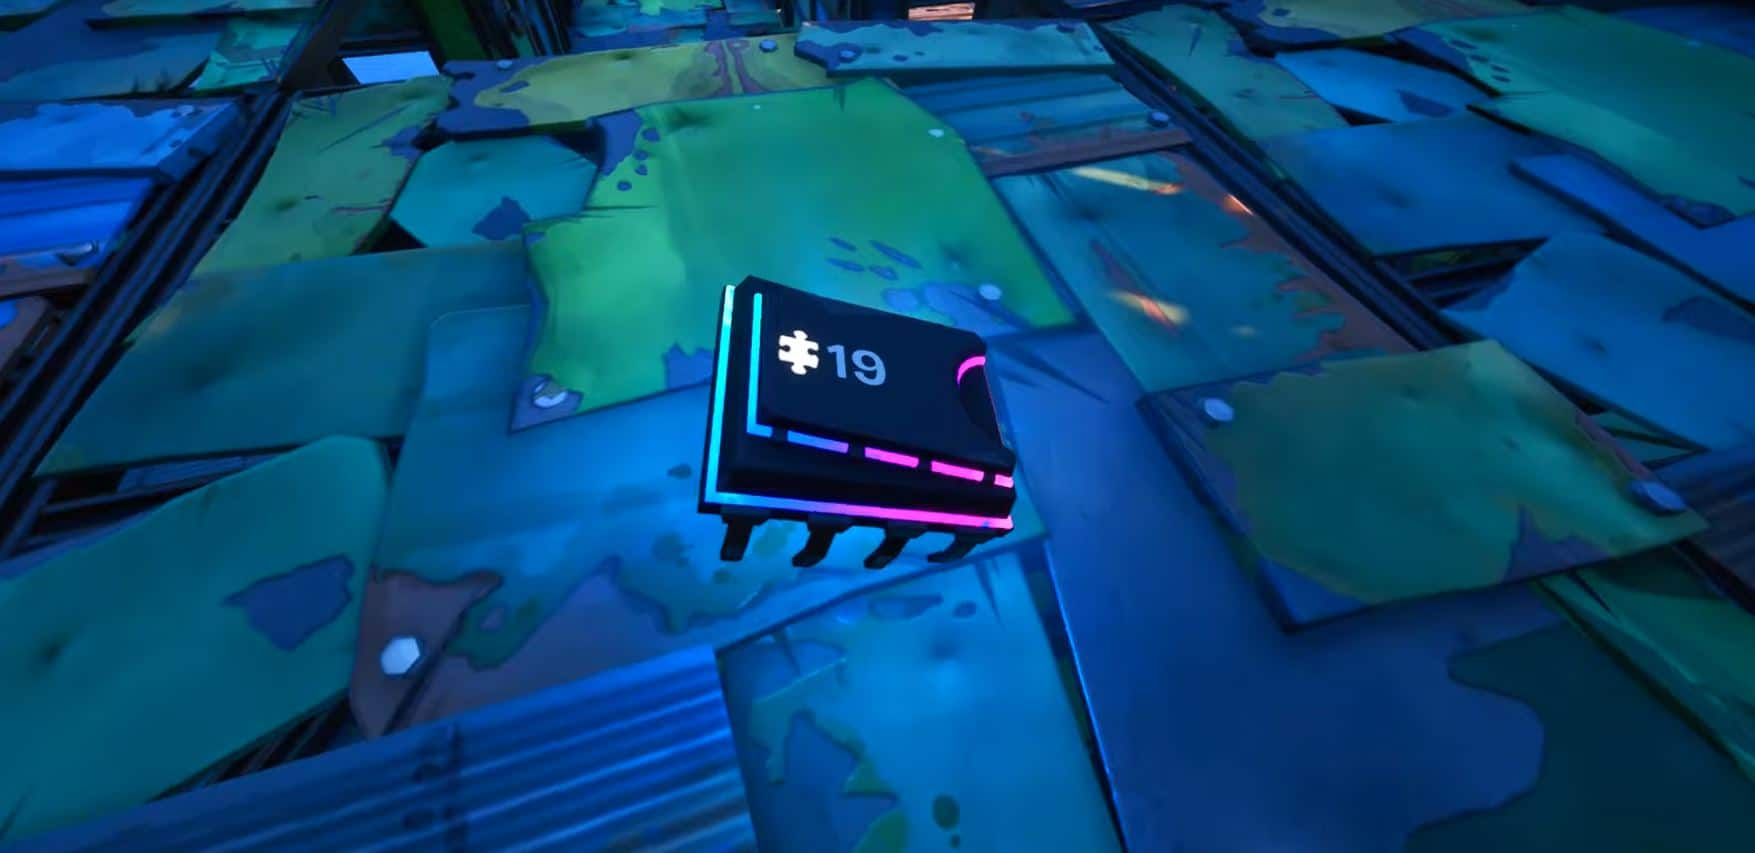 Fortnite Dónde encontrar el Fortbyte 19